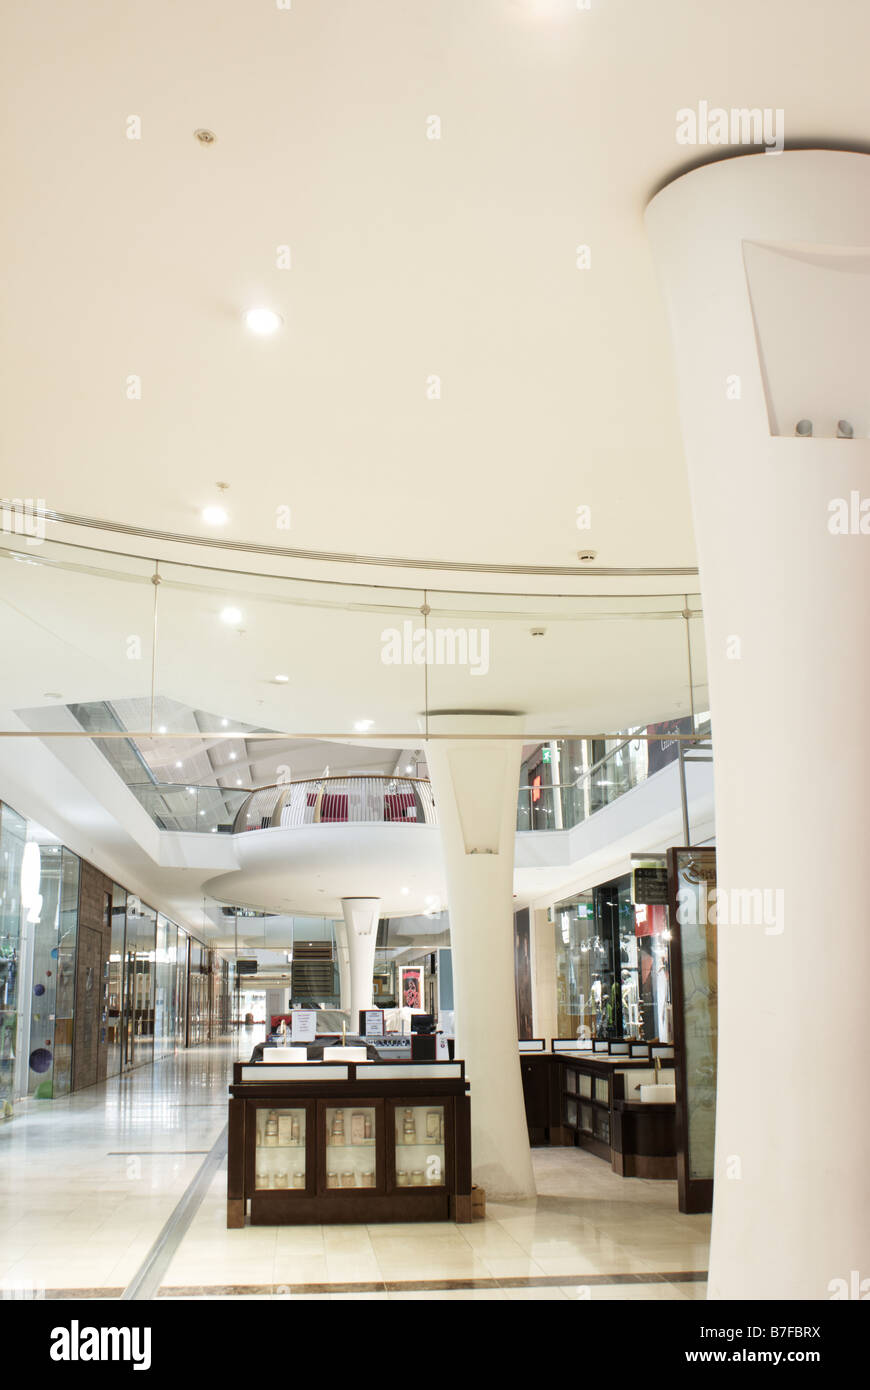 Westfield Derby Shopping Centre - Stock Image